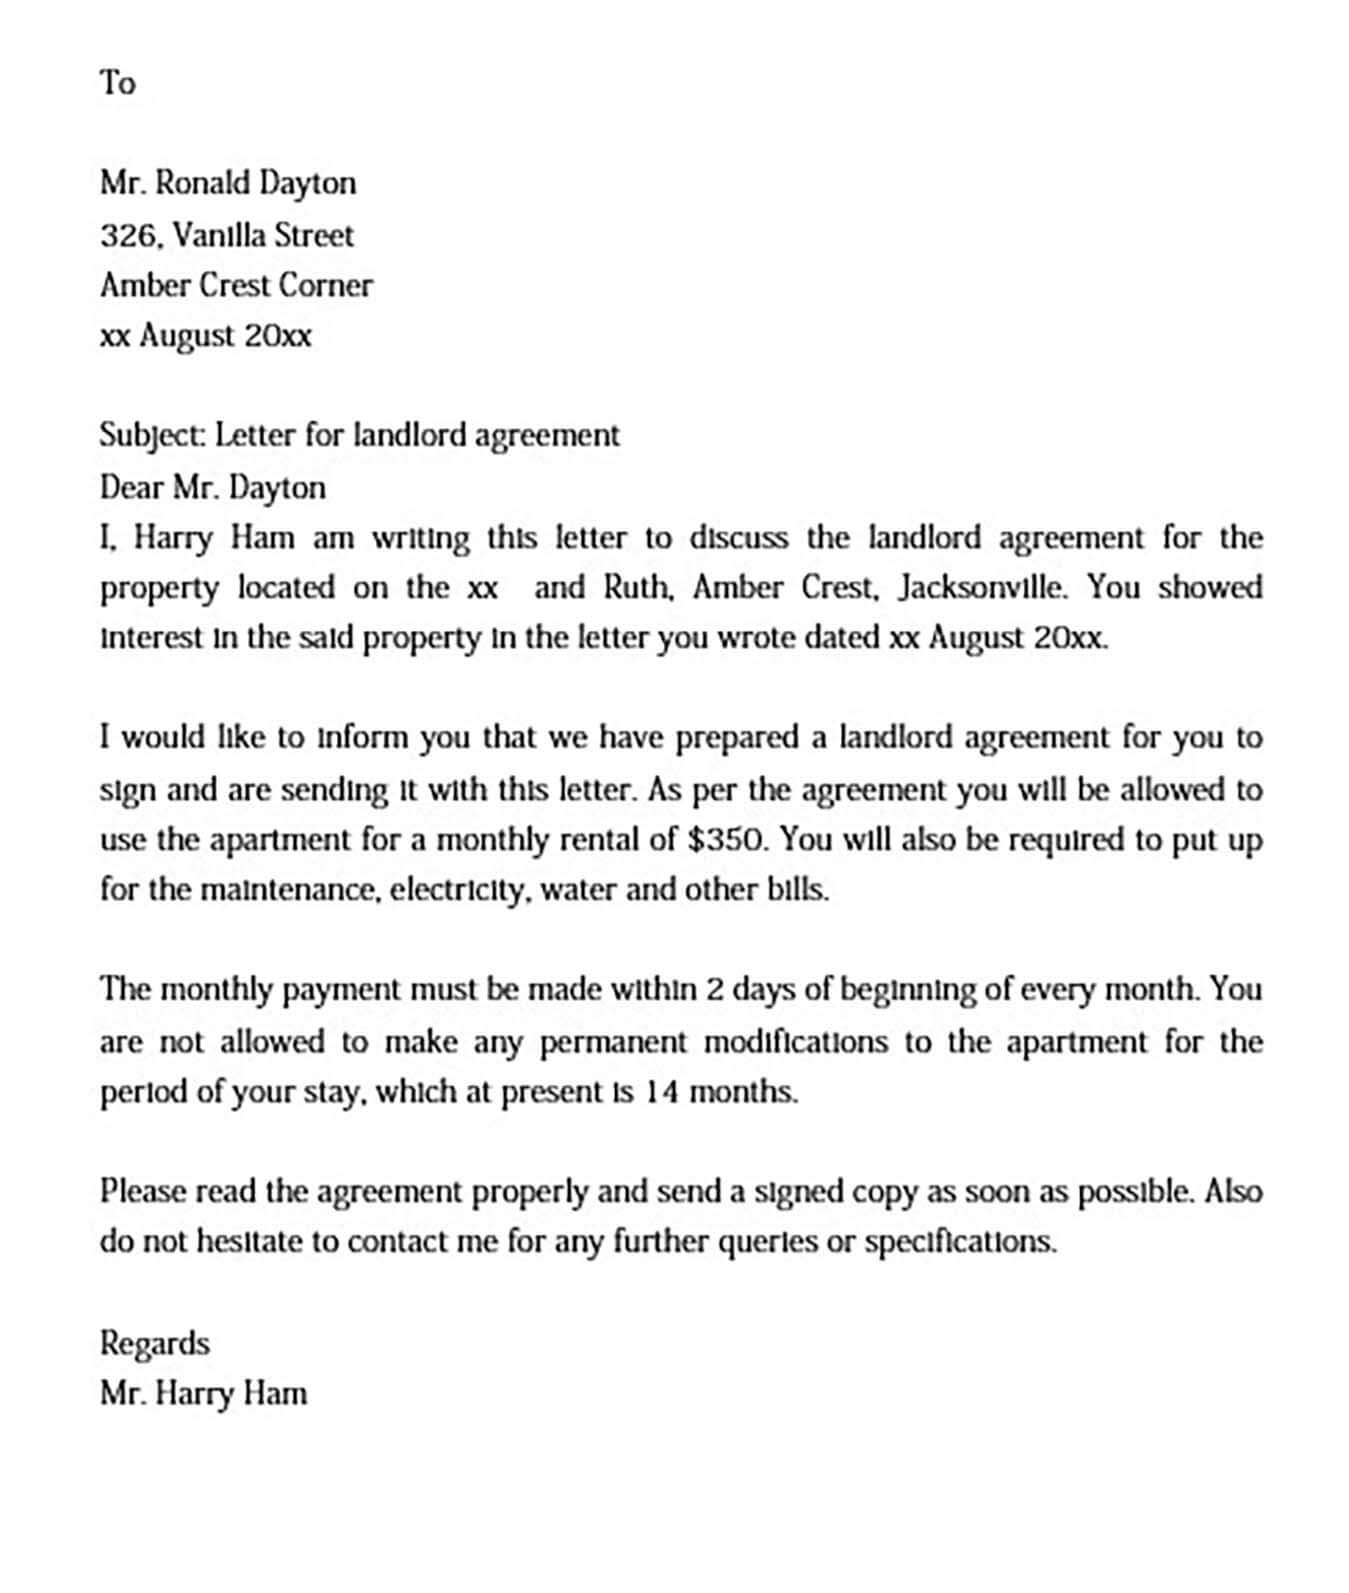 Sample Landlord Agreement Letter